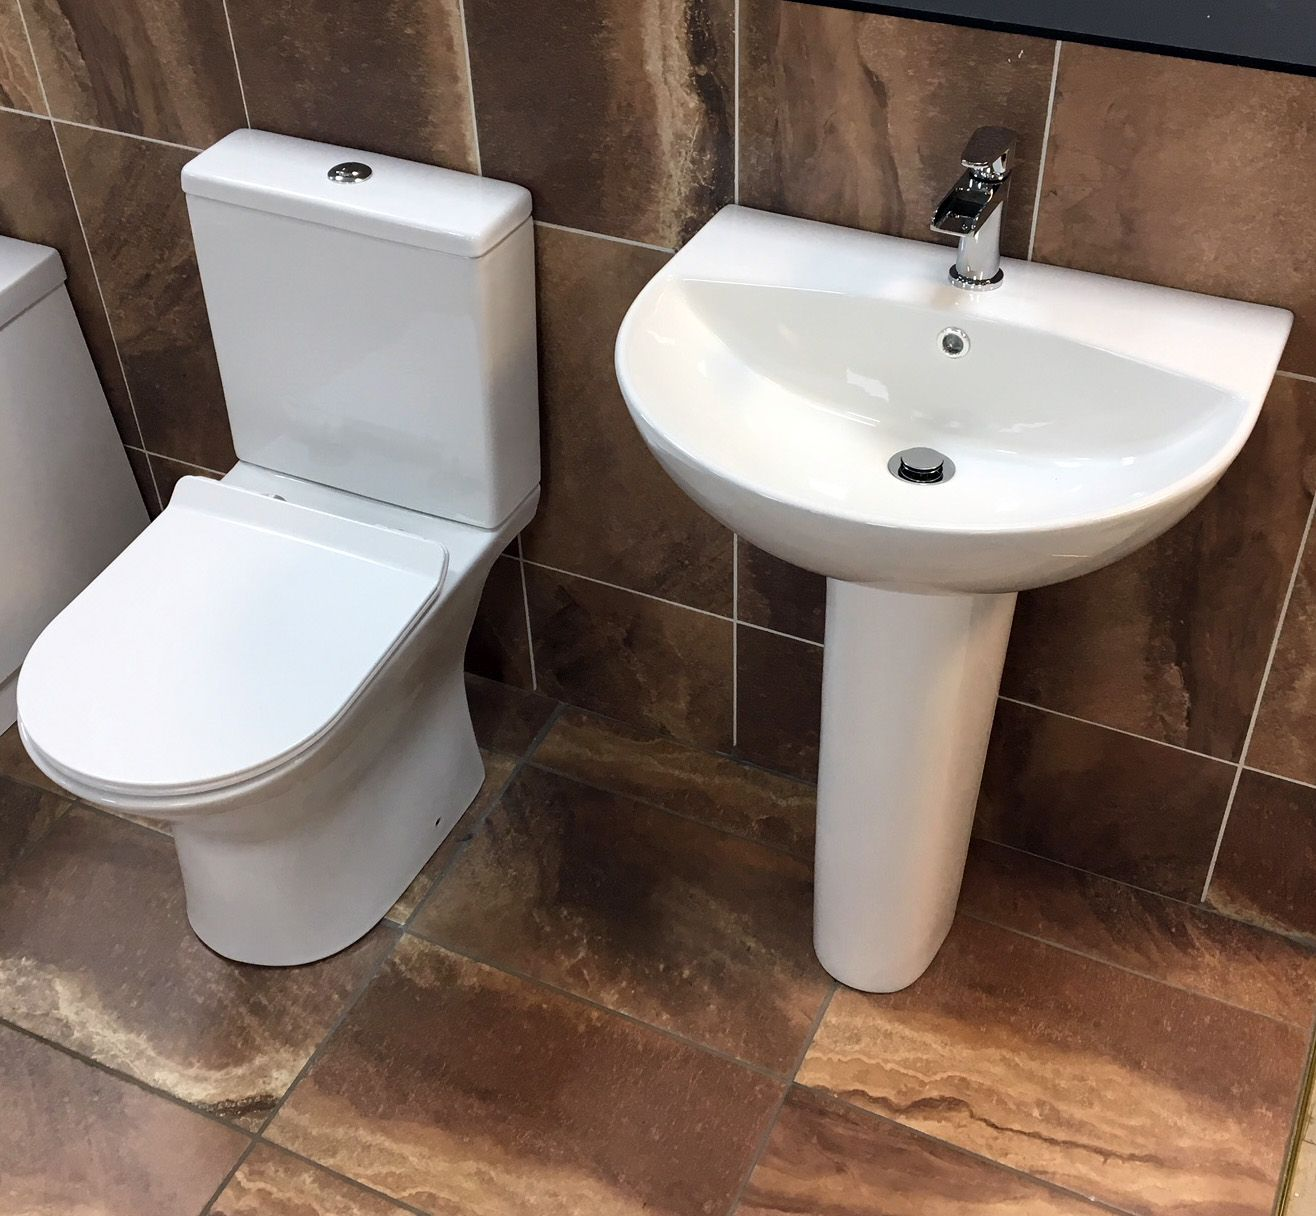 Tecaz bathroom suites - Opt For Some Classic Curves With Our Maria Basin Toilet Set From Only 169 99 Https Tecaz Com Online Store Webshop Browse Type Basin And Toilet Sets